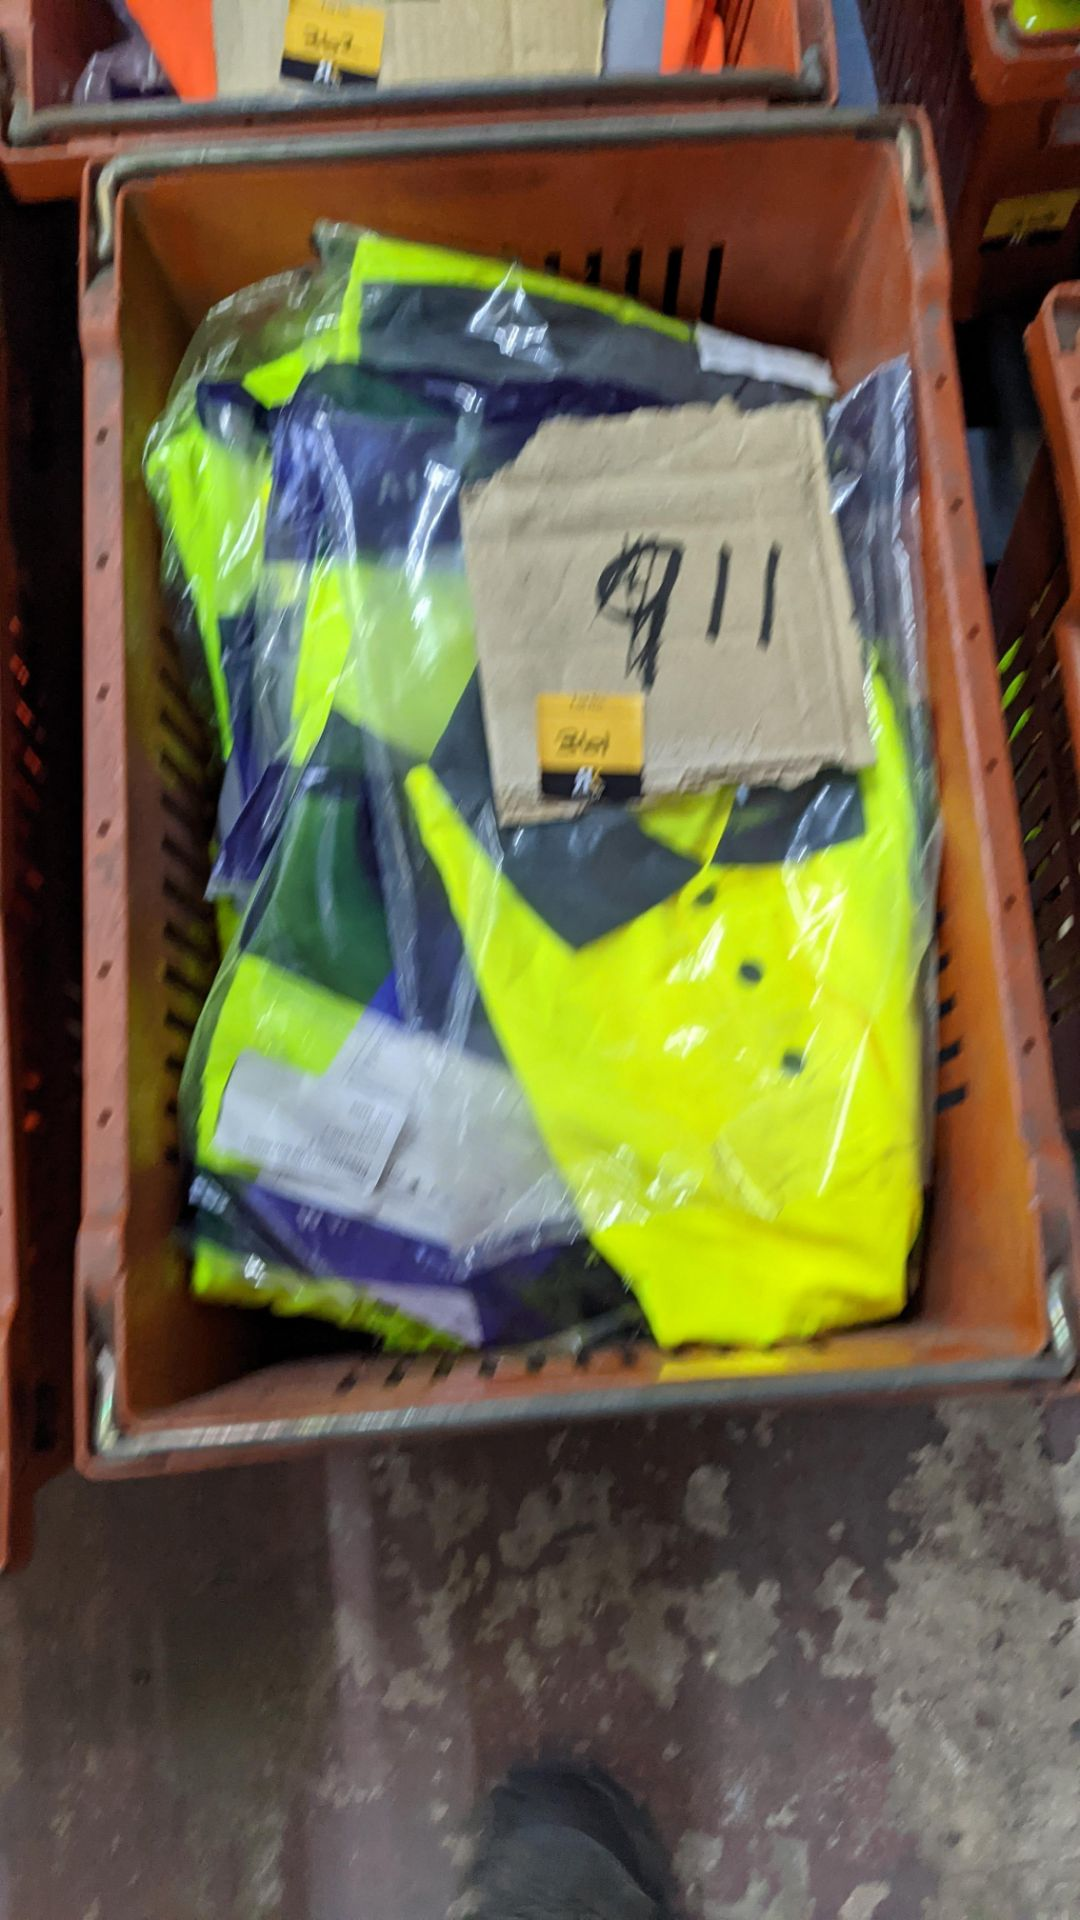 11 off hi-vis polo shirts (yellow) - Image 3 of 4